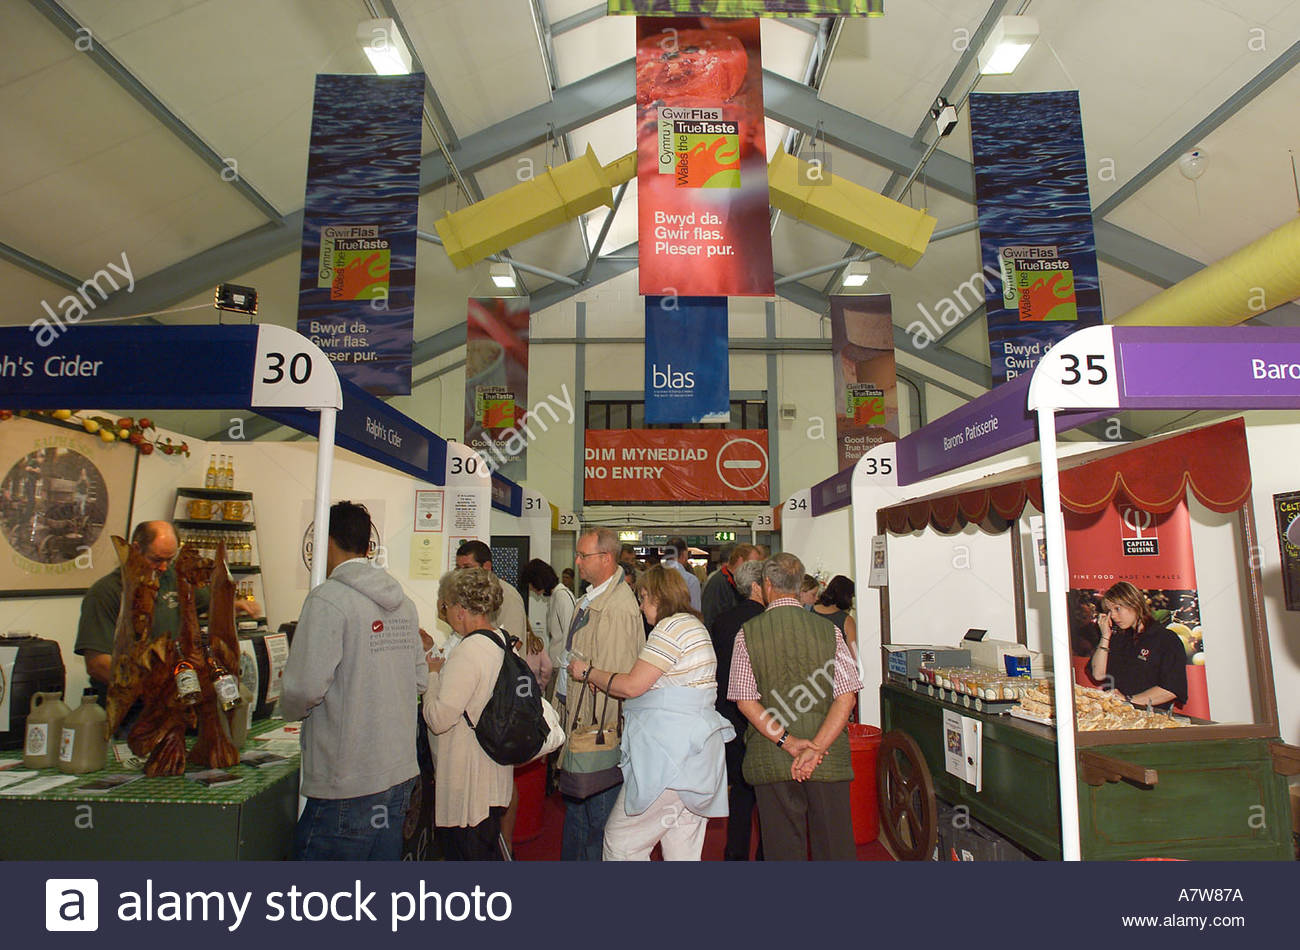 Royal Welsh Show Mid-Wales, Food Hall at Royal Welsh Agricultural Show 2004 Builth Wells Mid ...